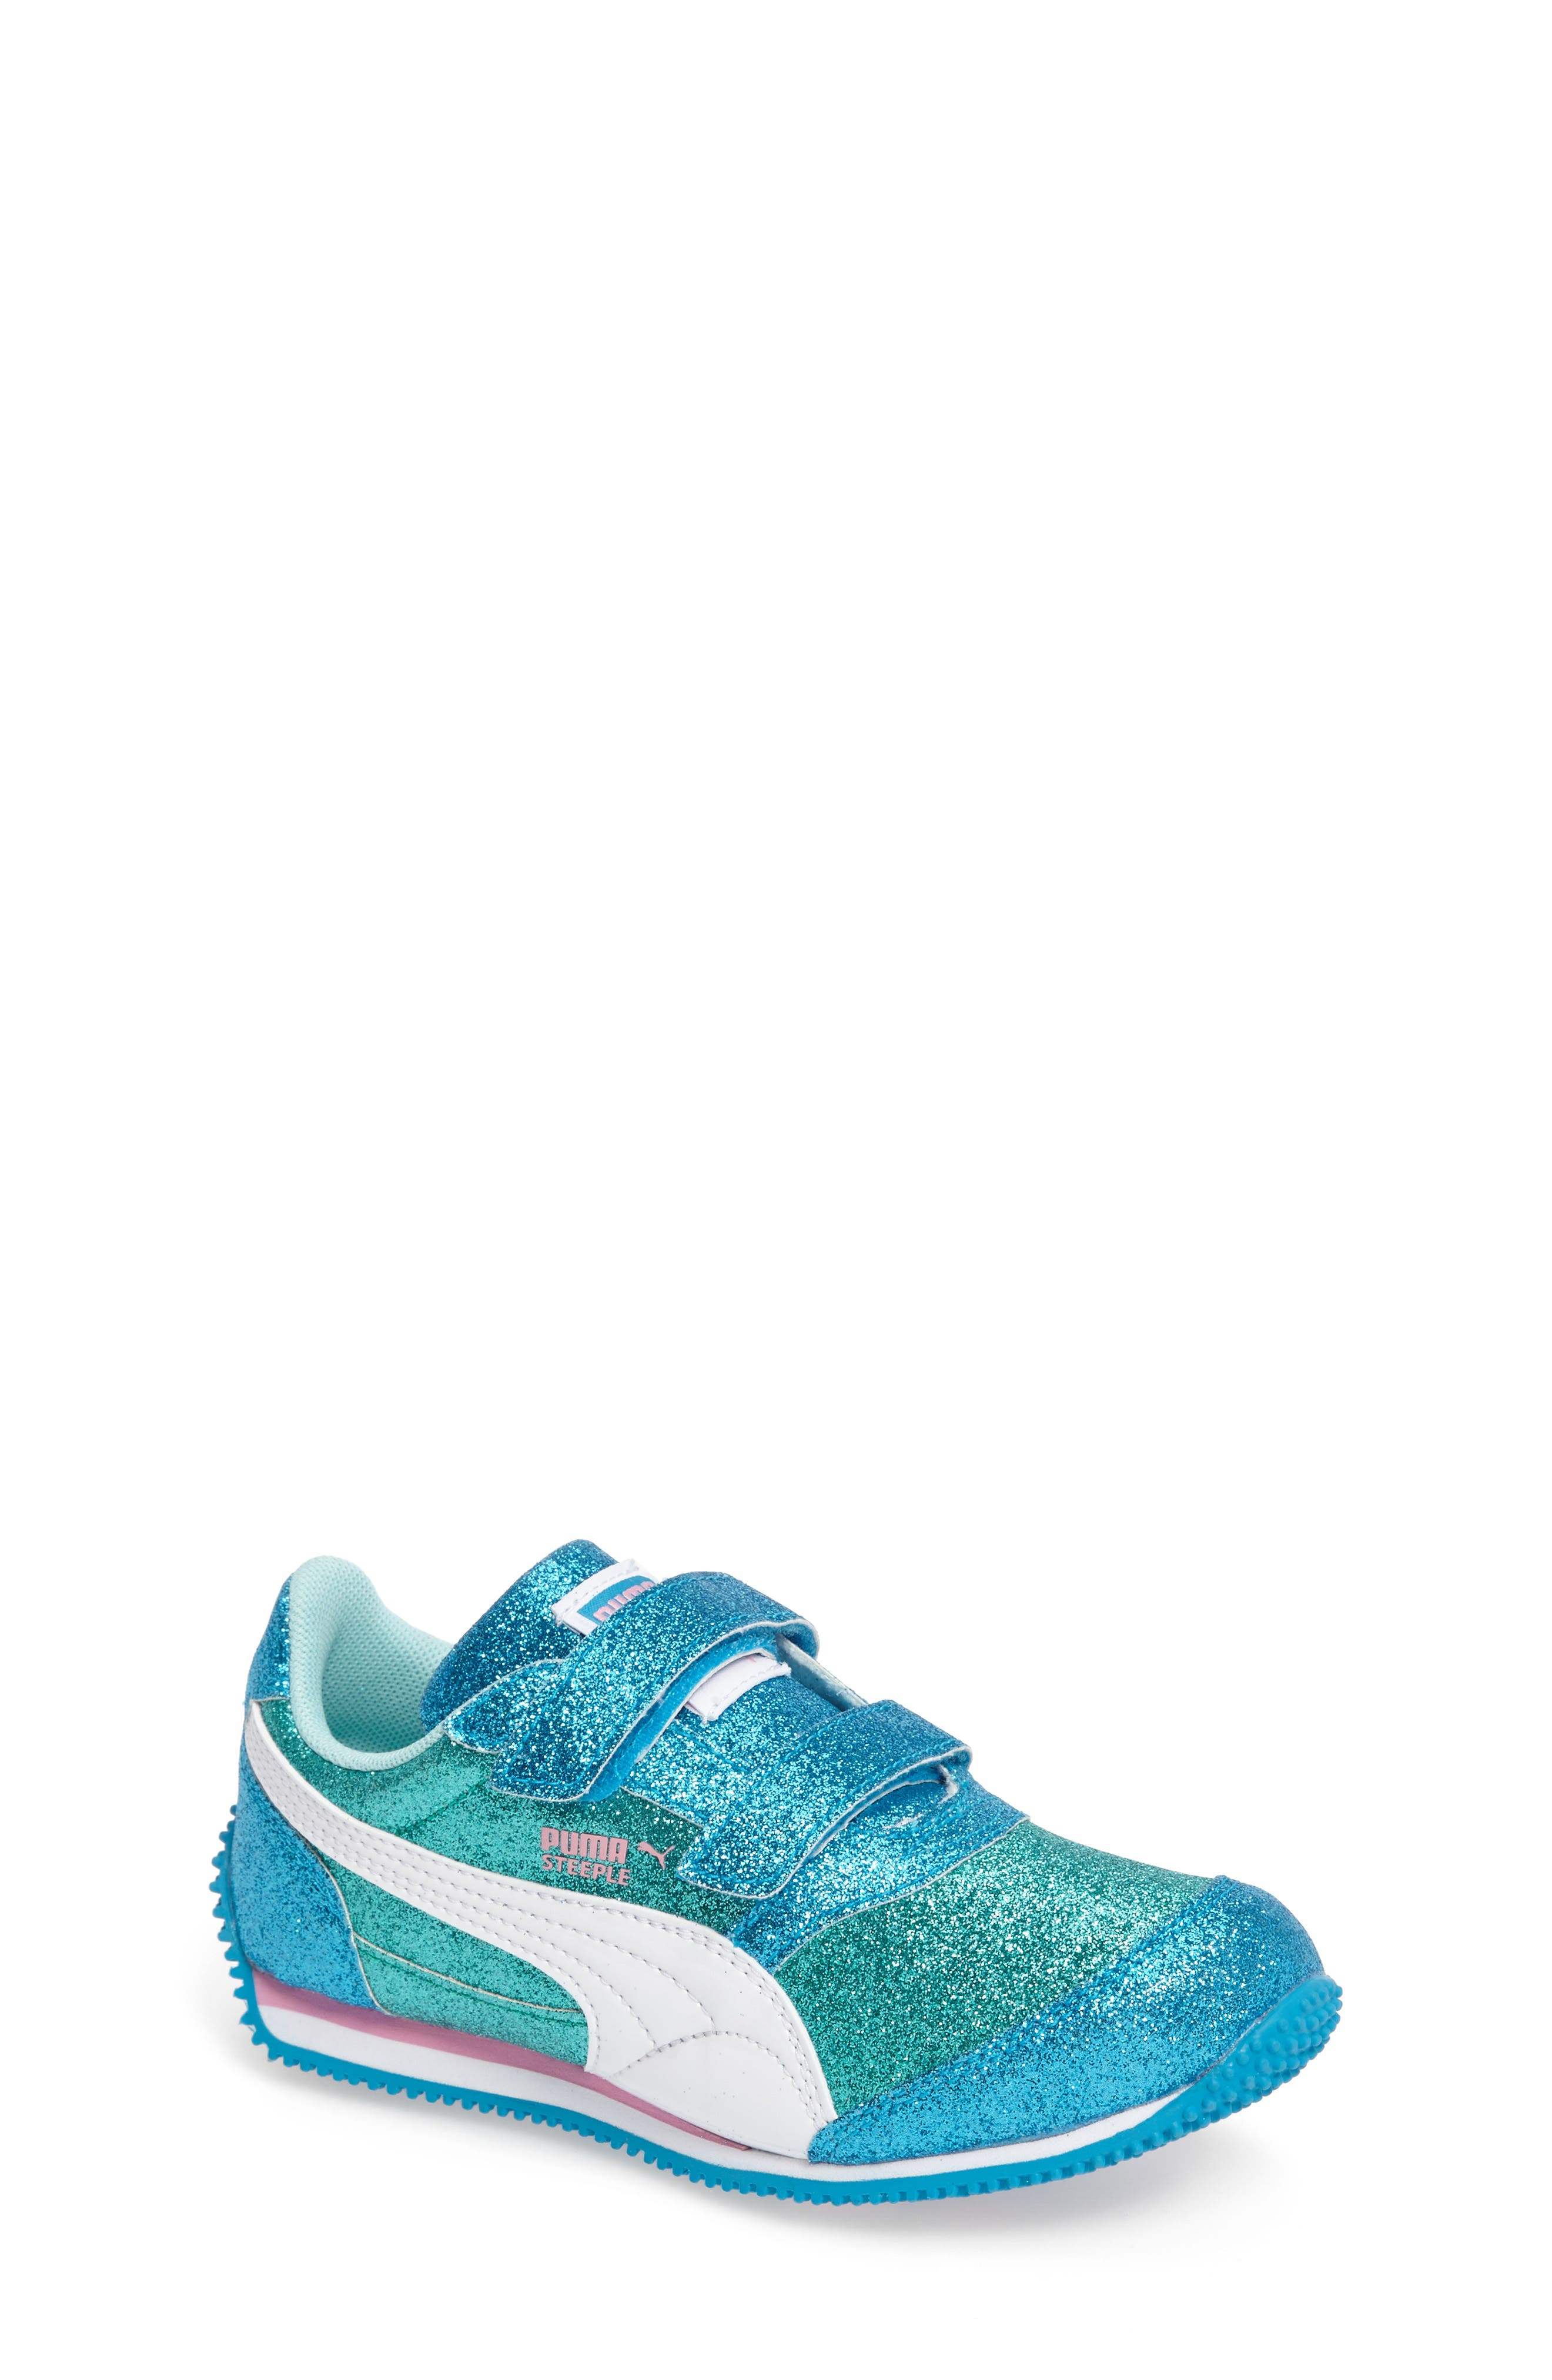 Steeple Glitz Glam Sneaker,                             Main thumbnail 1, color,                             400